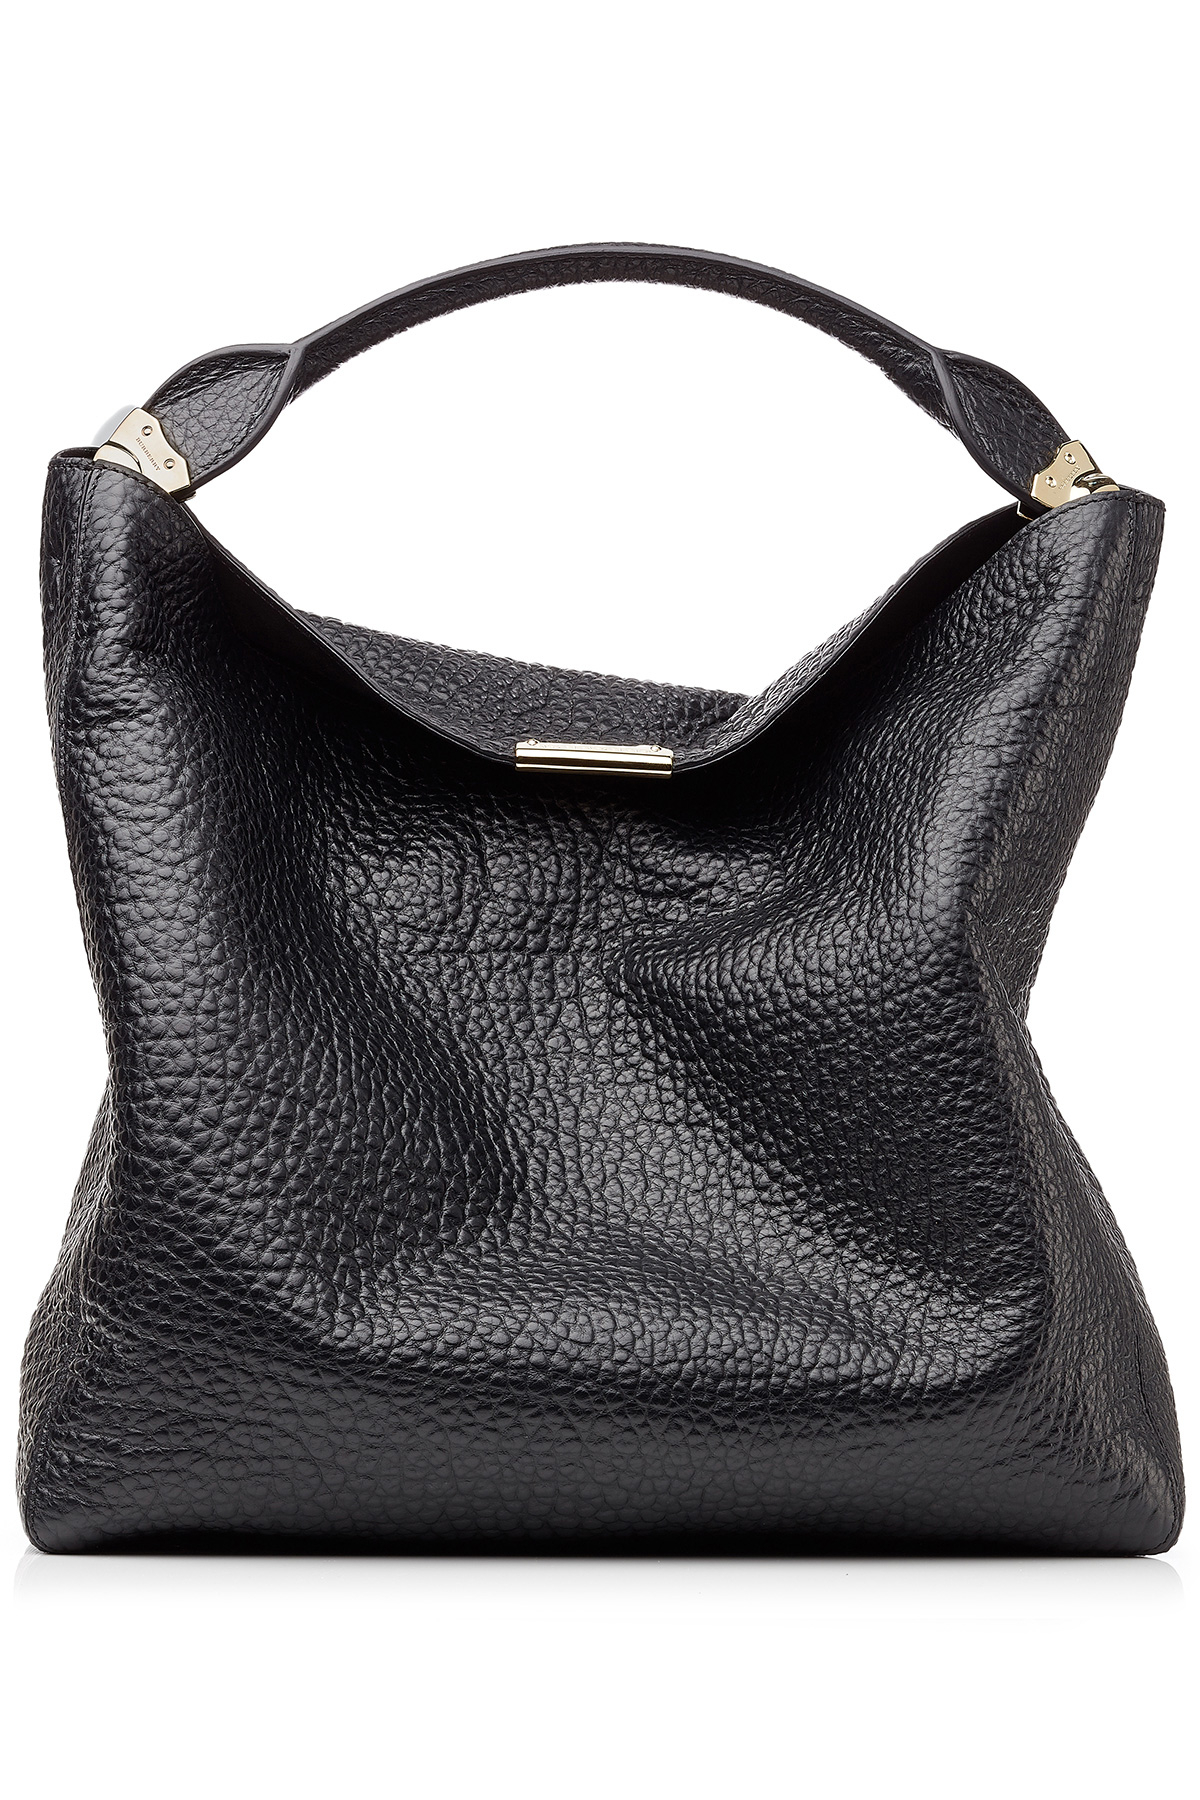 81c1da37b6d9 Lyst - Burberry Lindburn Embossed Leather Hobo Bag - Black in Black